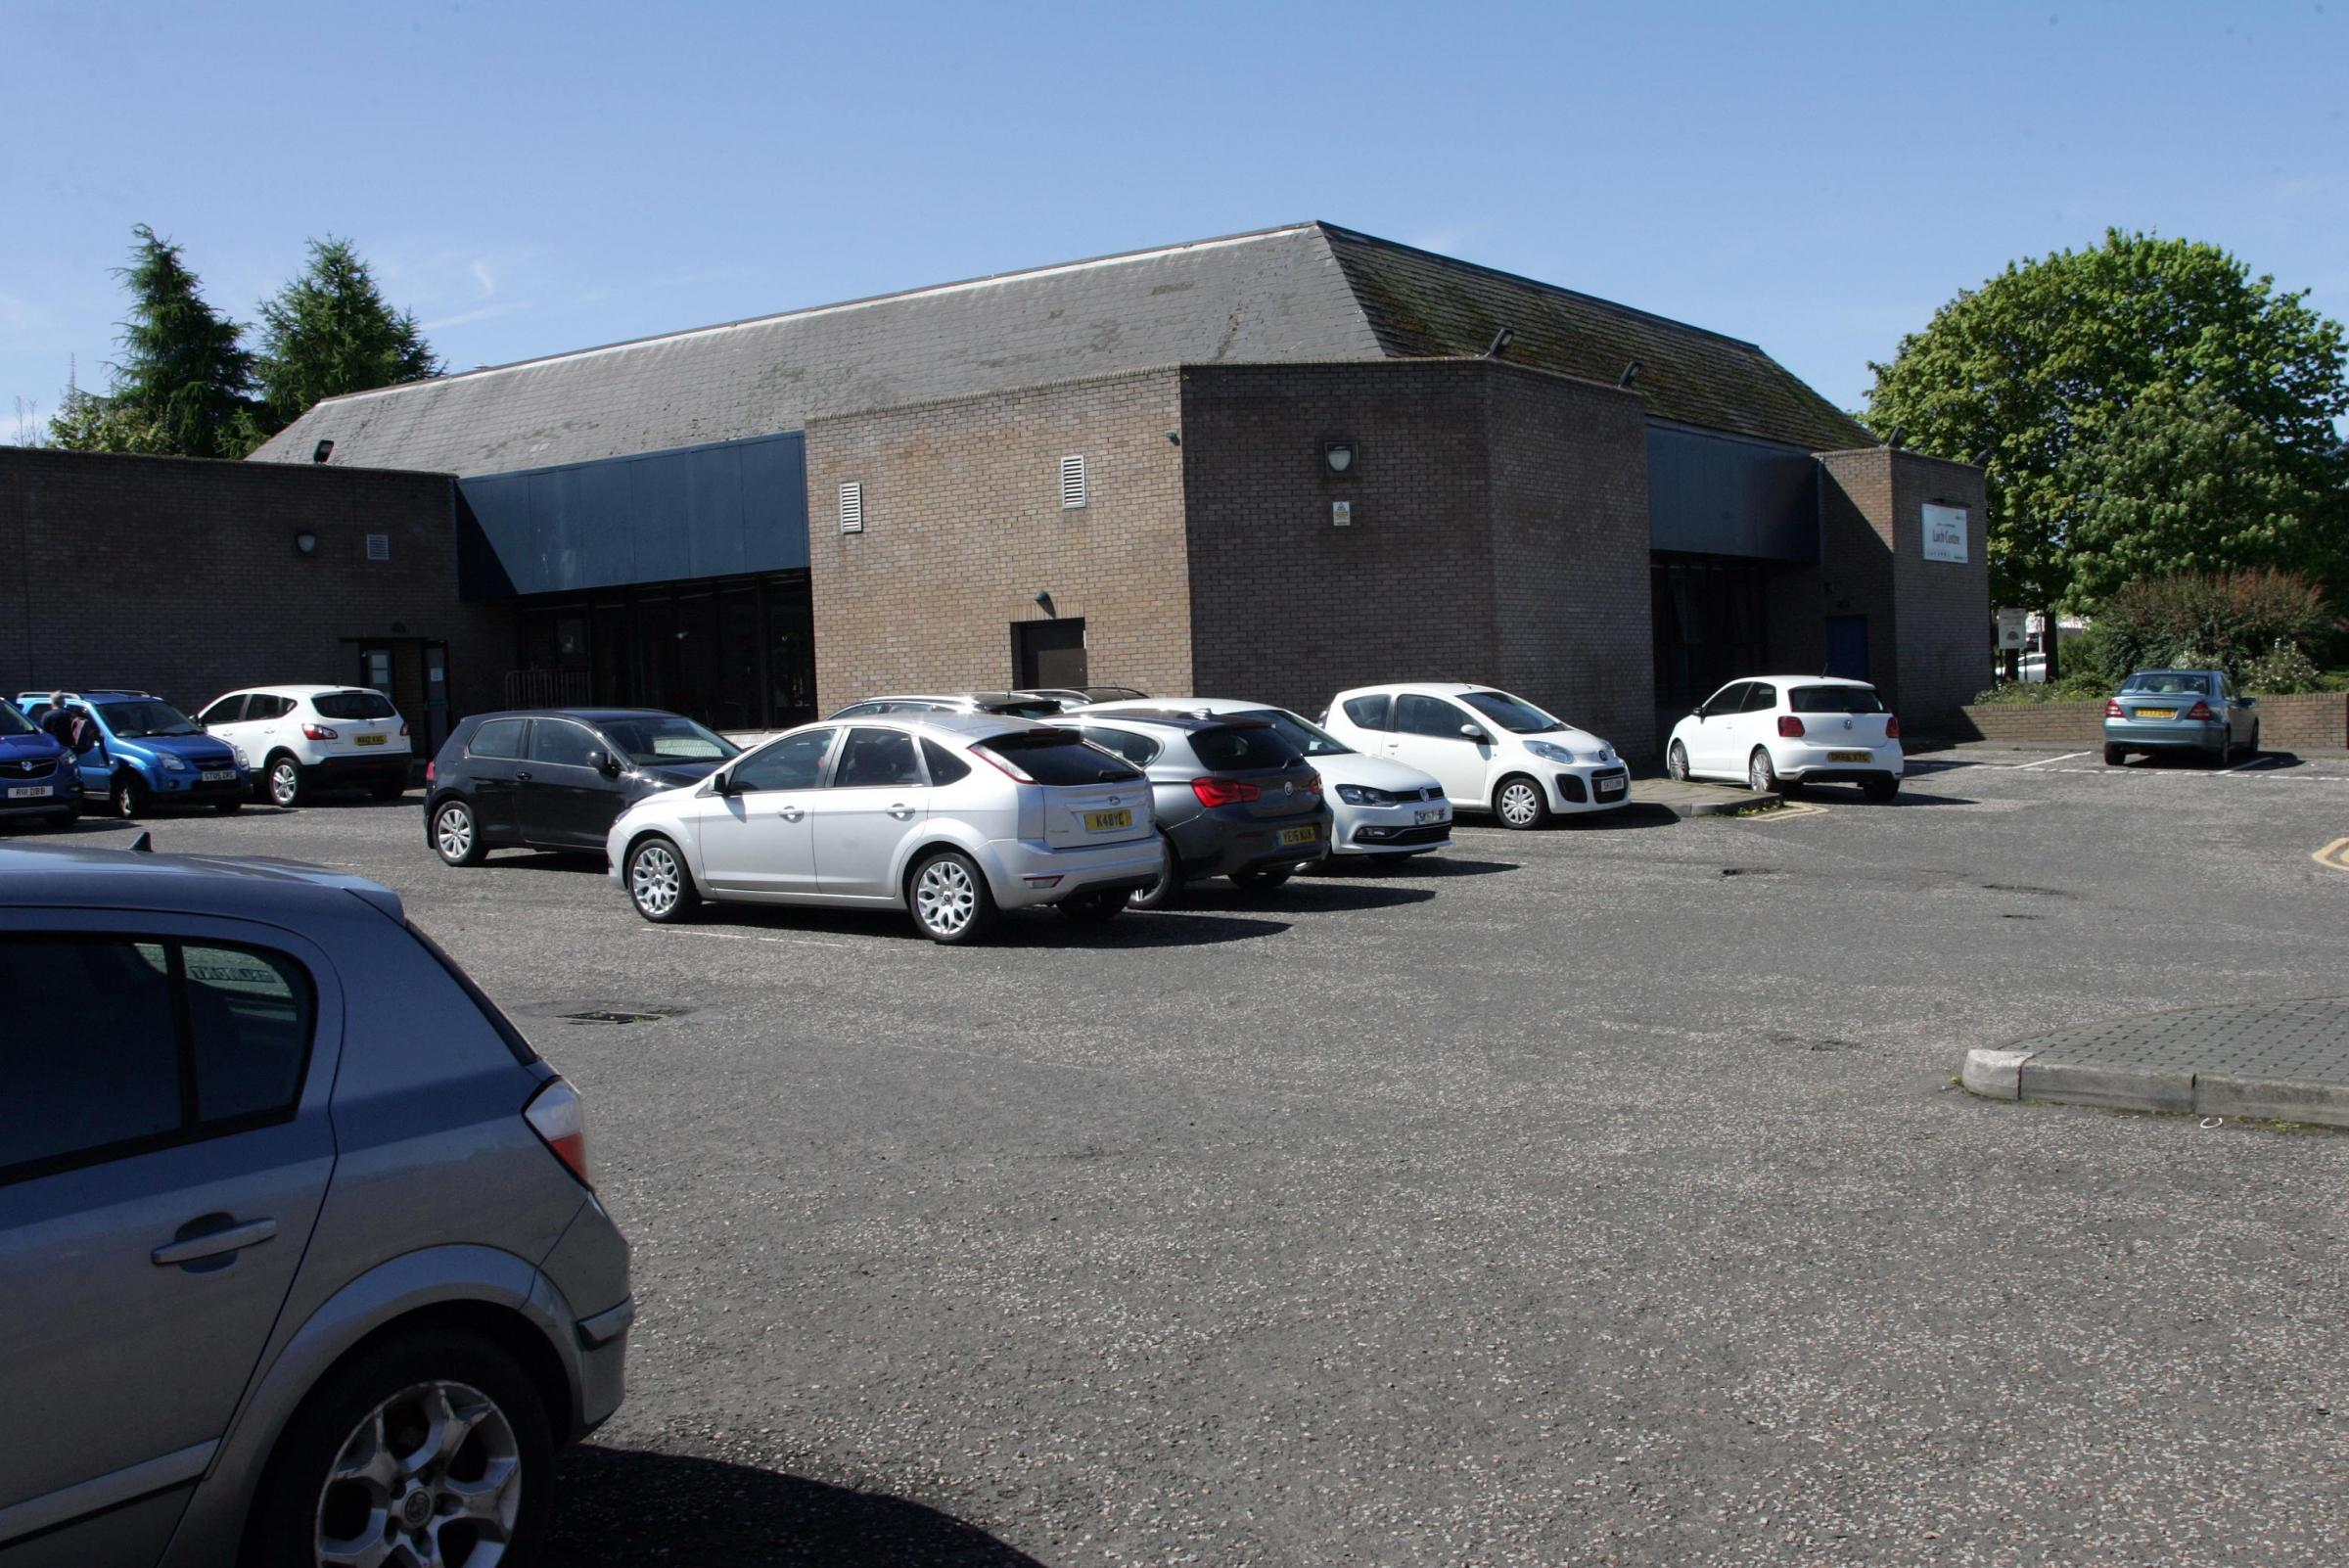 Could parking restrictions be introduced at the Loch Centre?